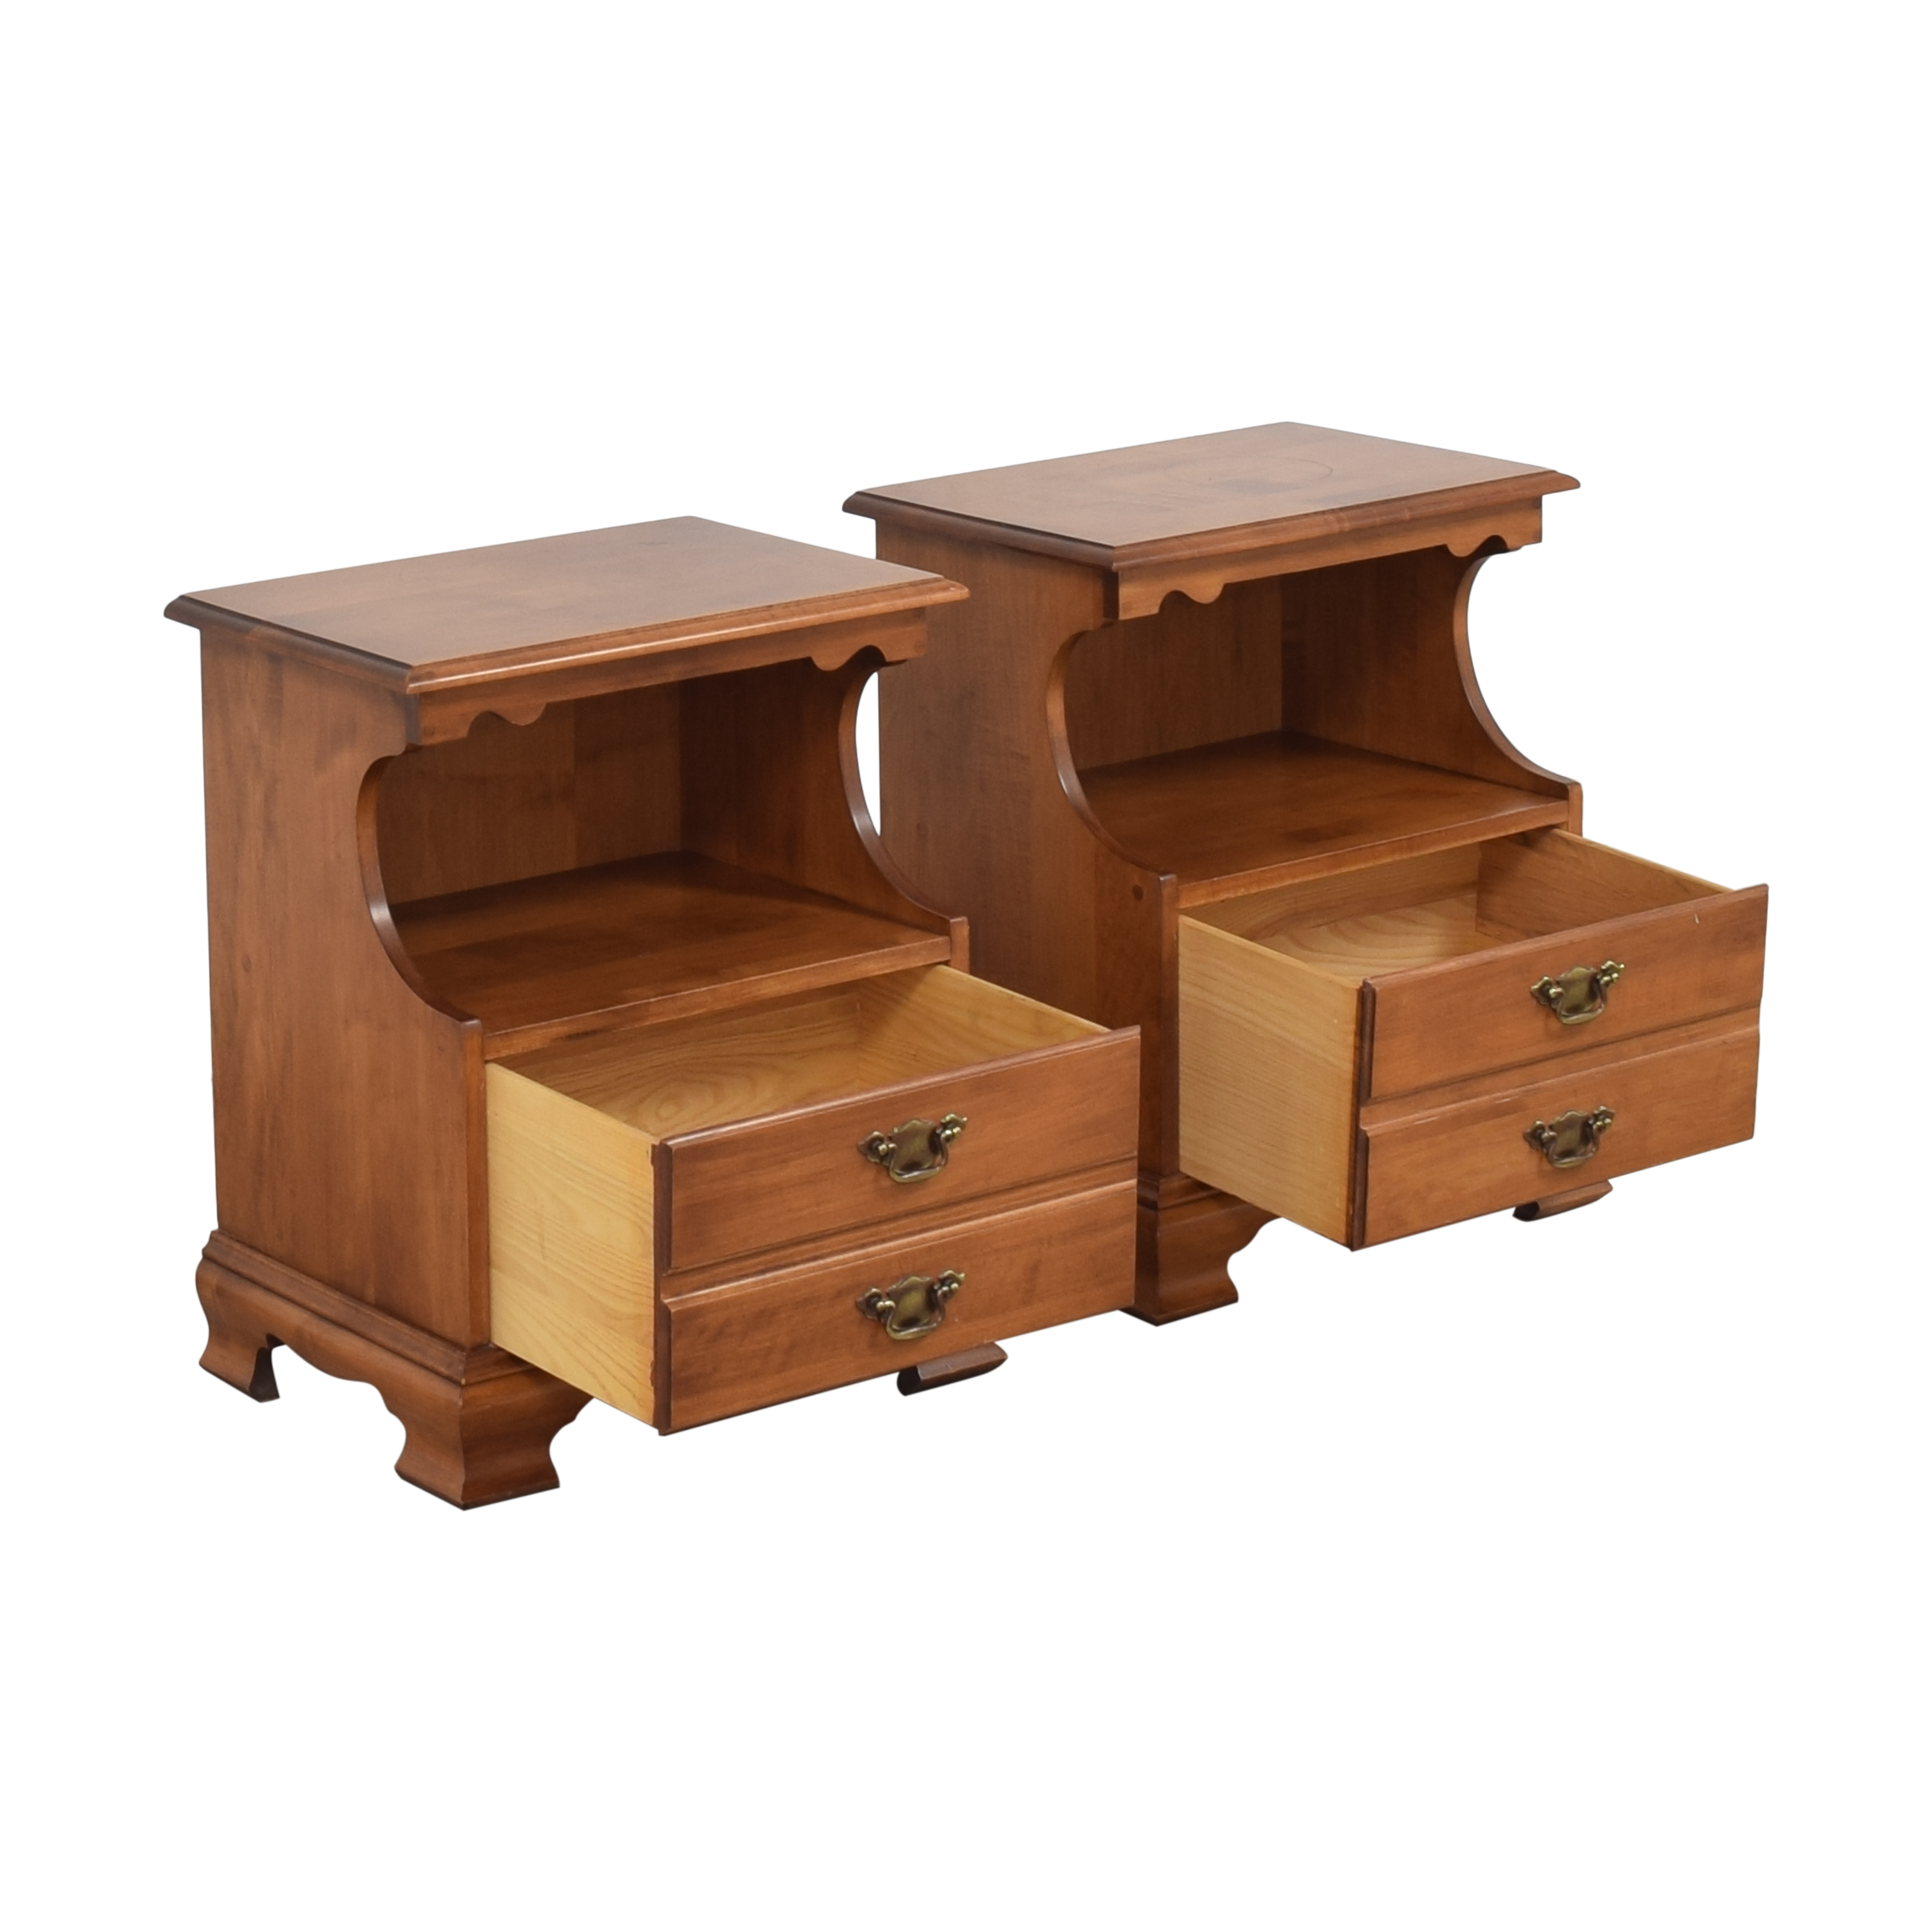 Tell City Young Republic Nightstands / End Tables